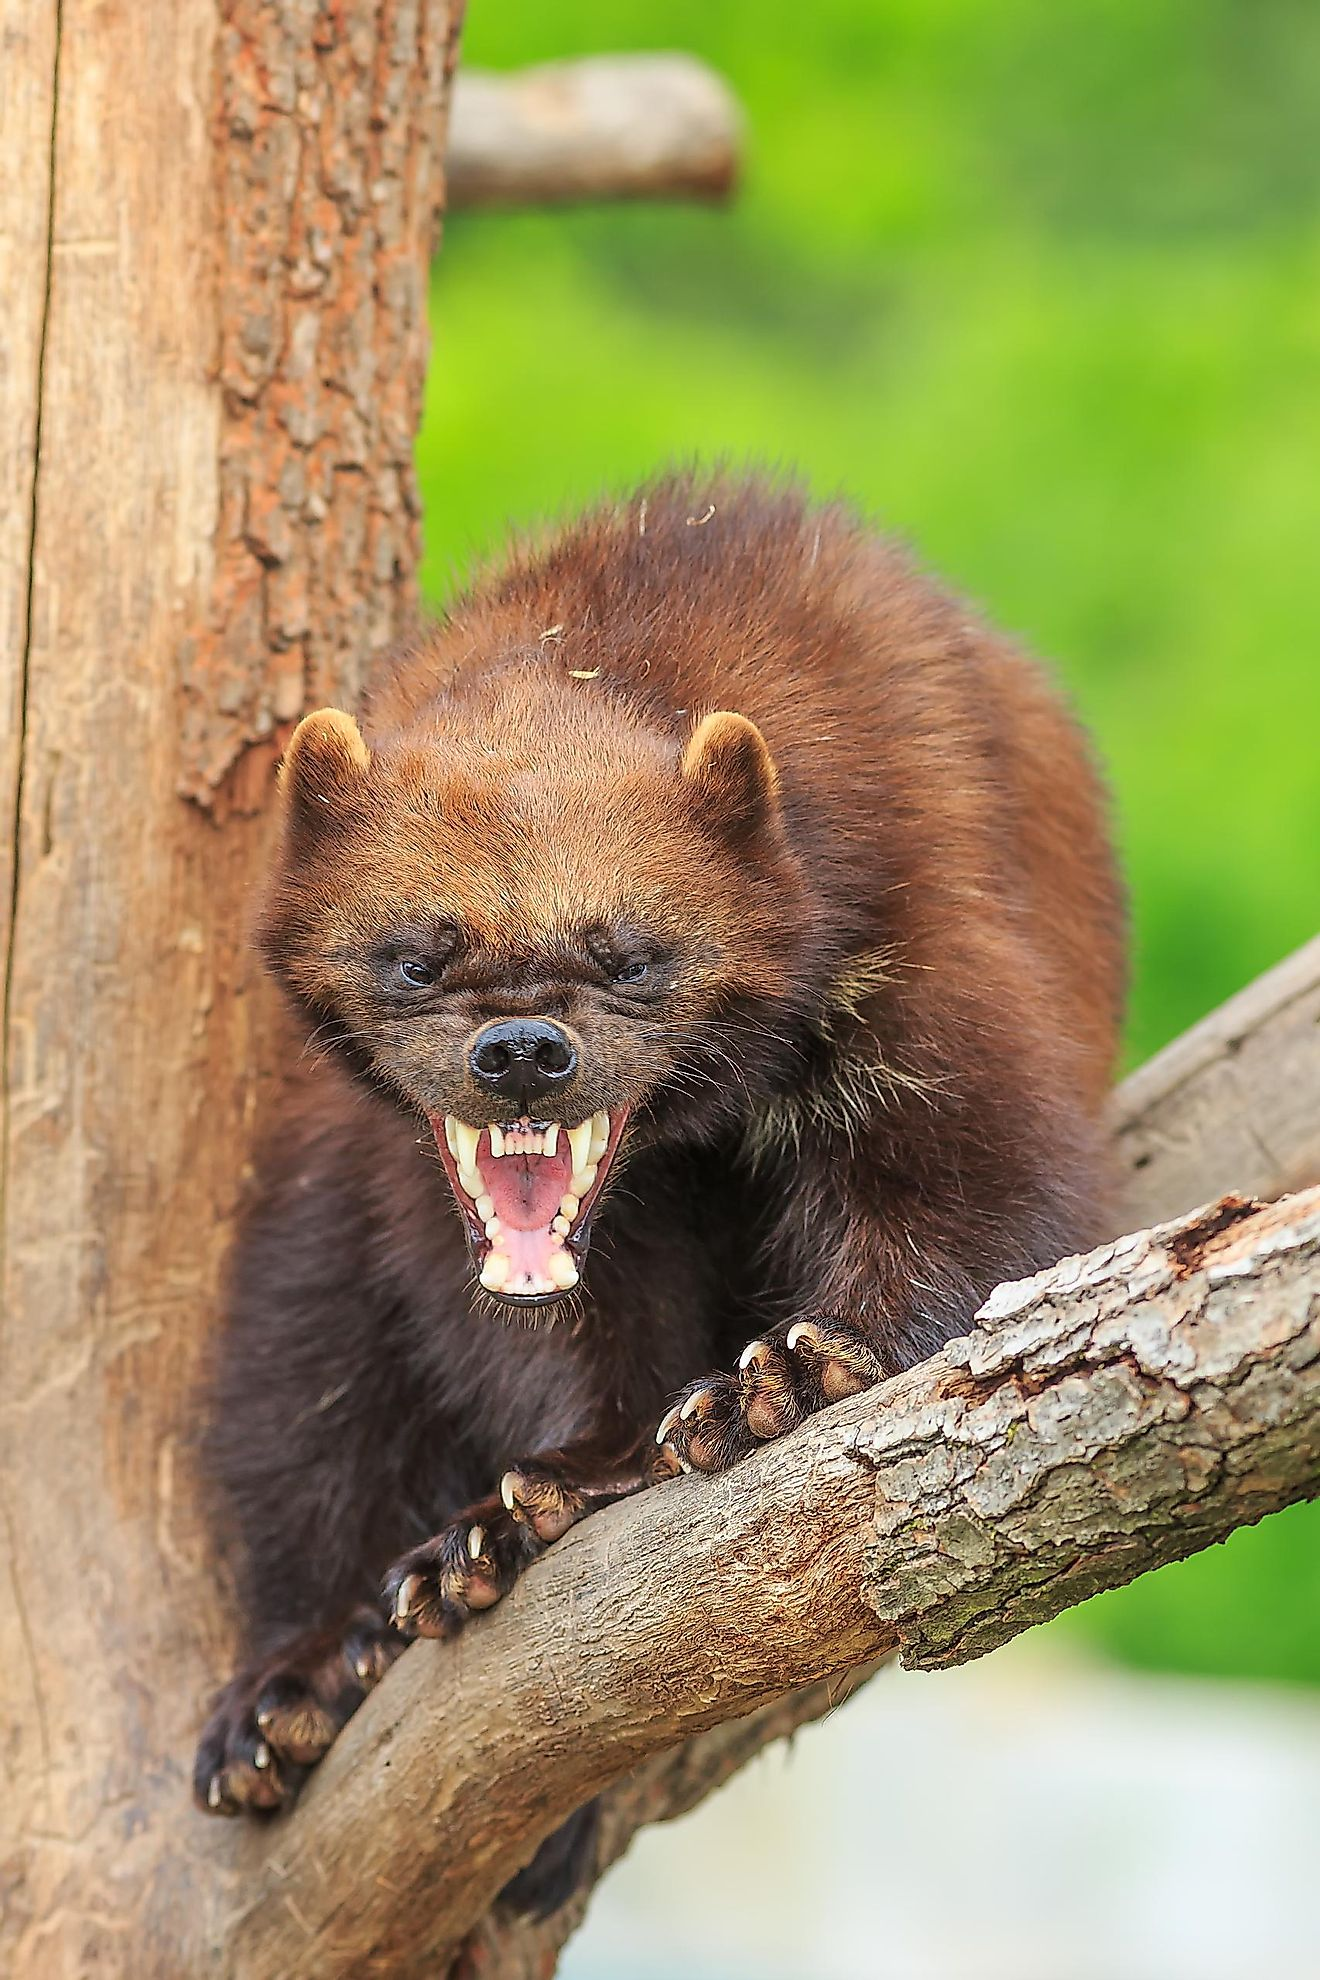 Due to its fierce appearance and agressive nature, many sports teams have adopted the Wolverine as their mascot.